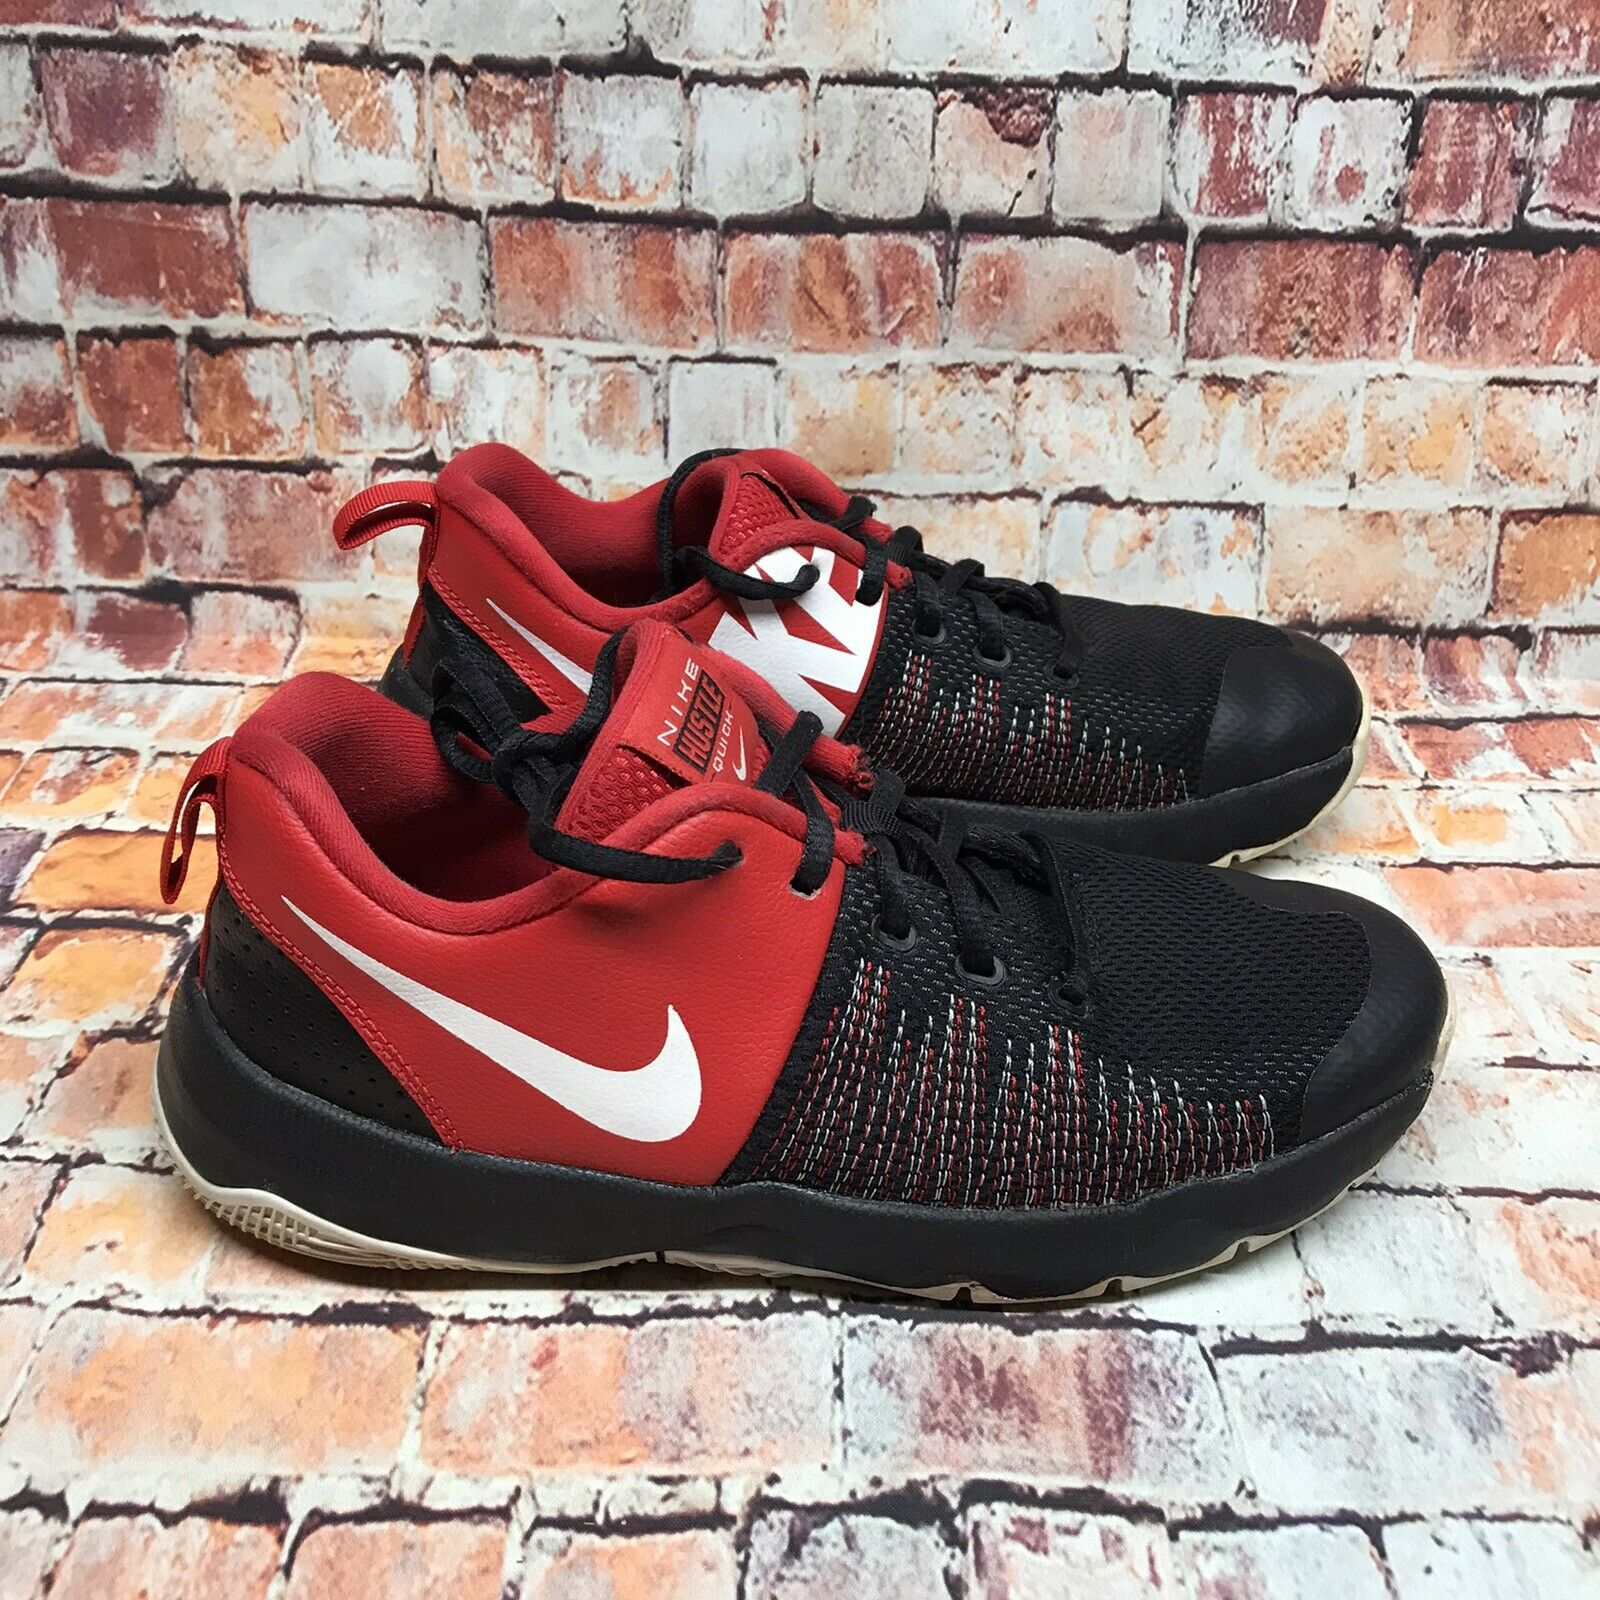 Nike Youth Red Black Team Hustle Quick